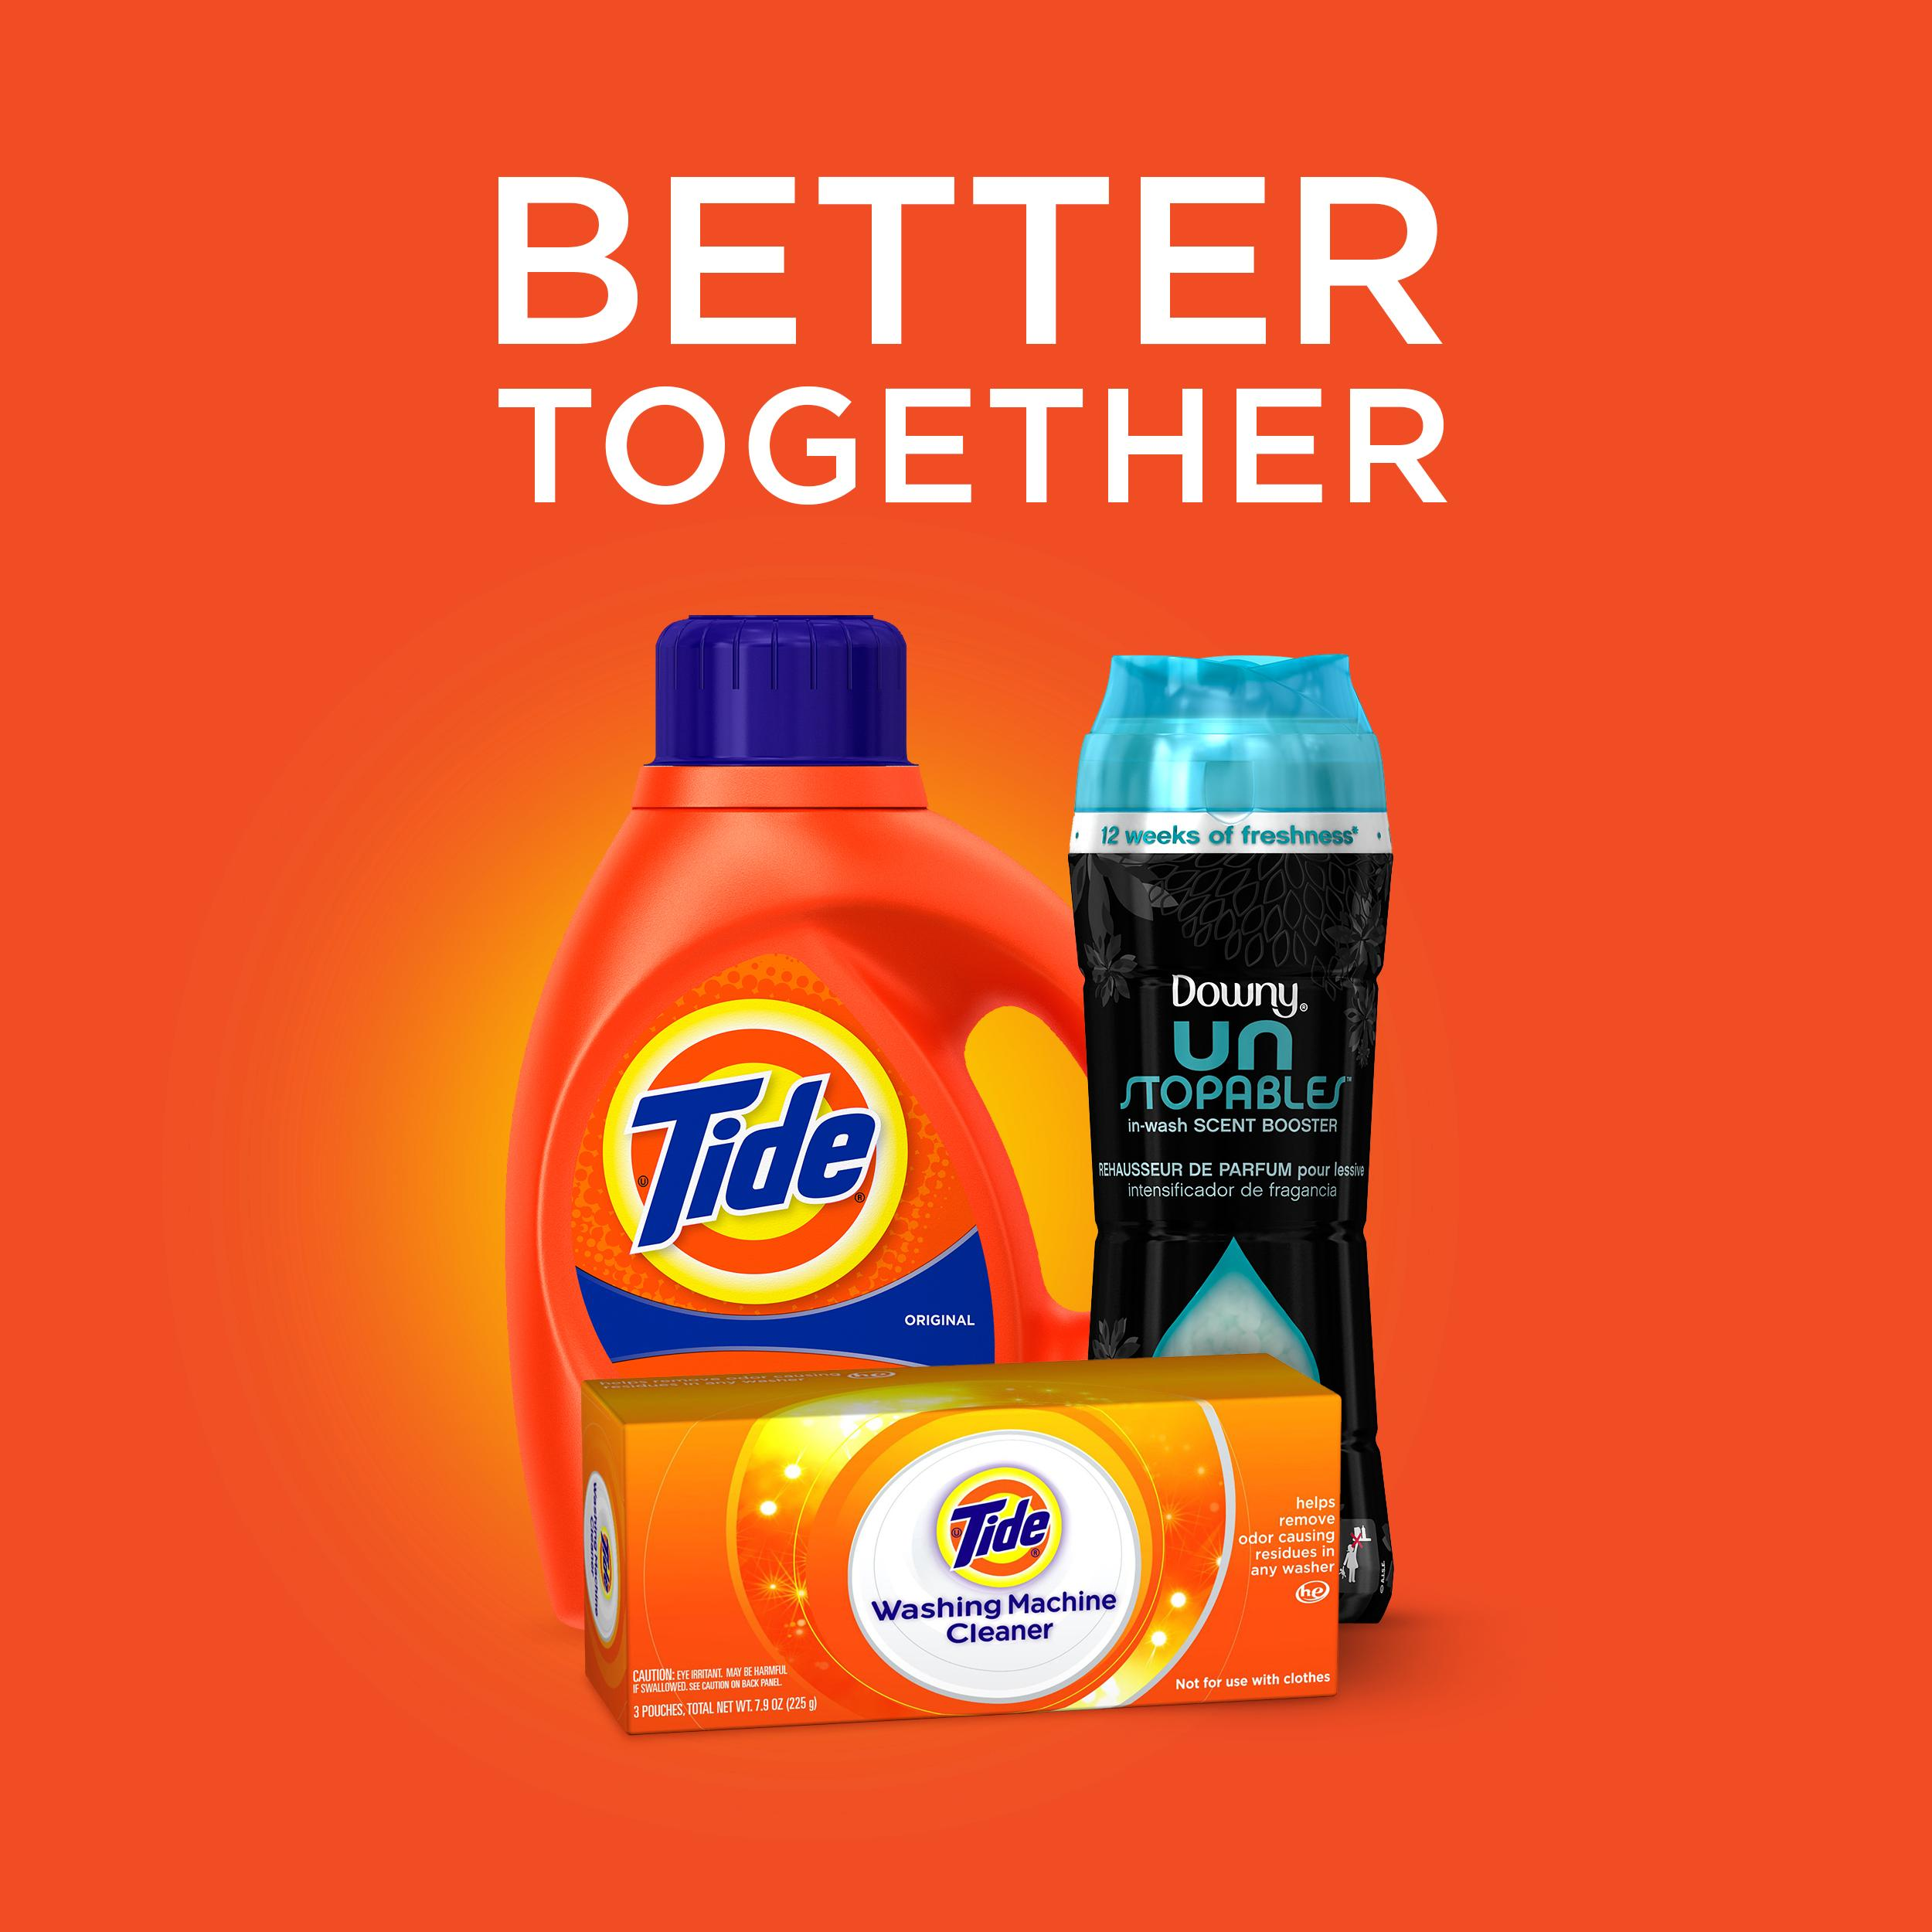 Amazon.com: Tide Original Scent Liquid Laundry Detergent, 32 loads, 50 fl oz (Packaging May Vary ...